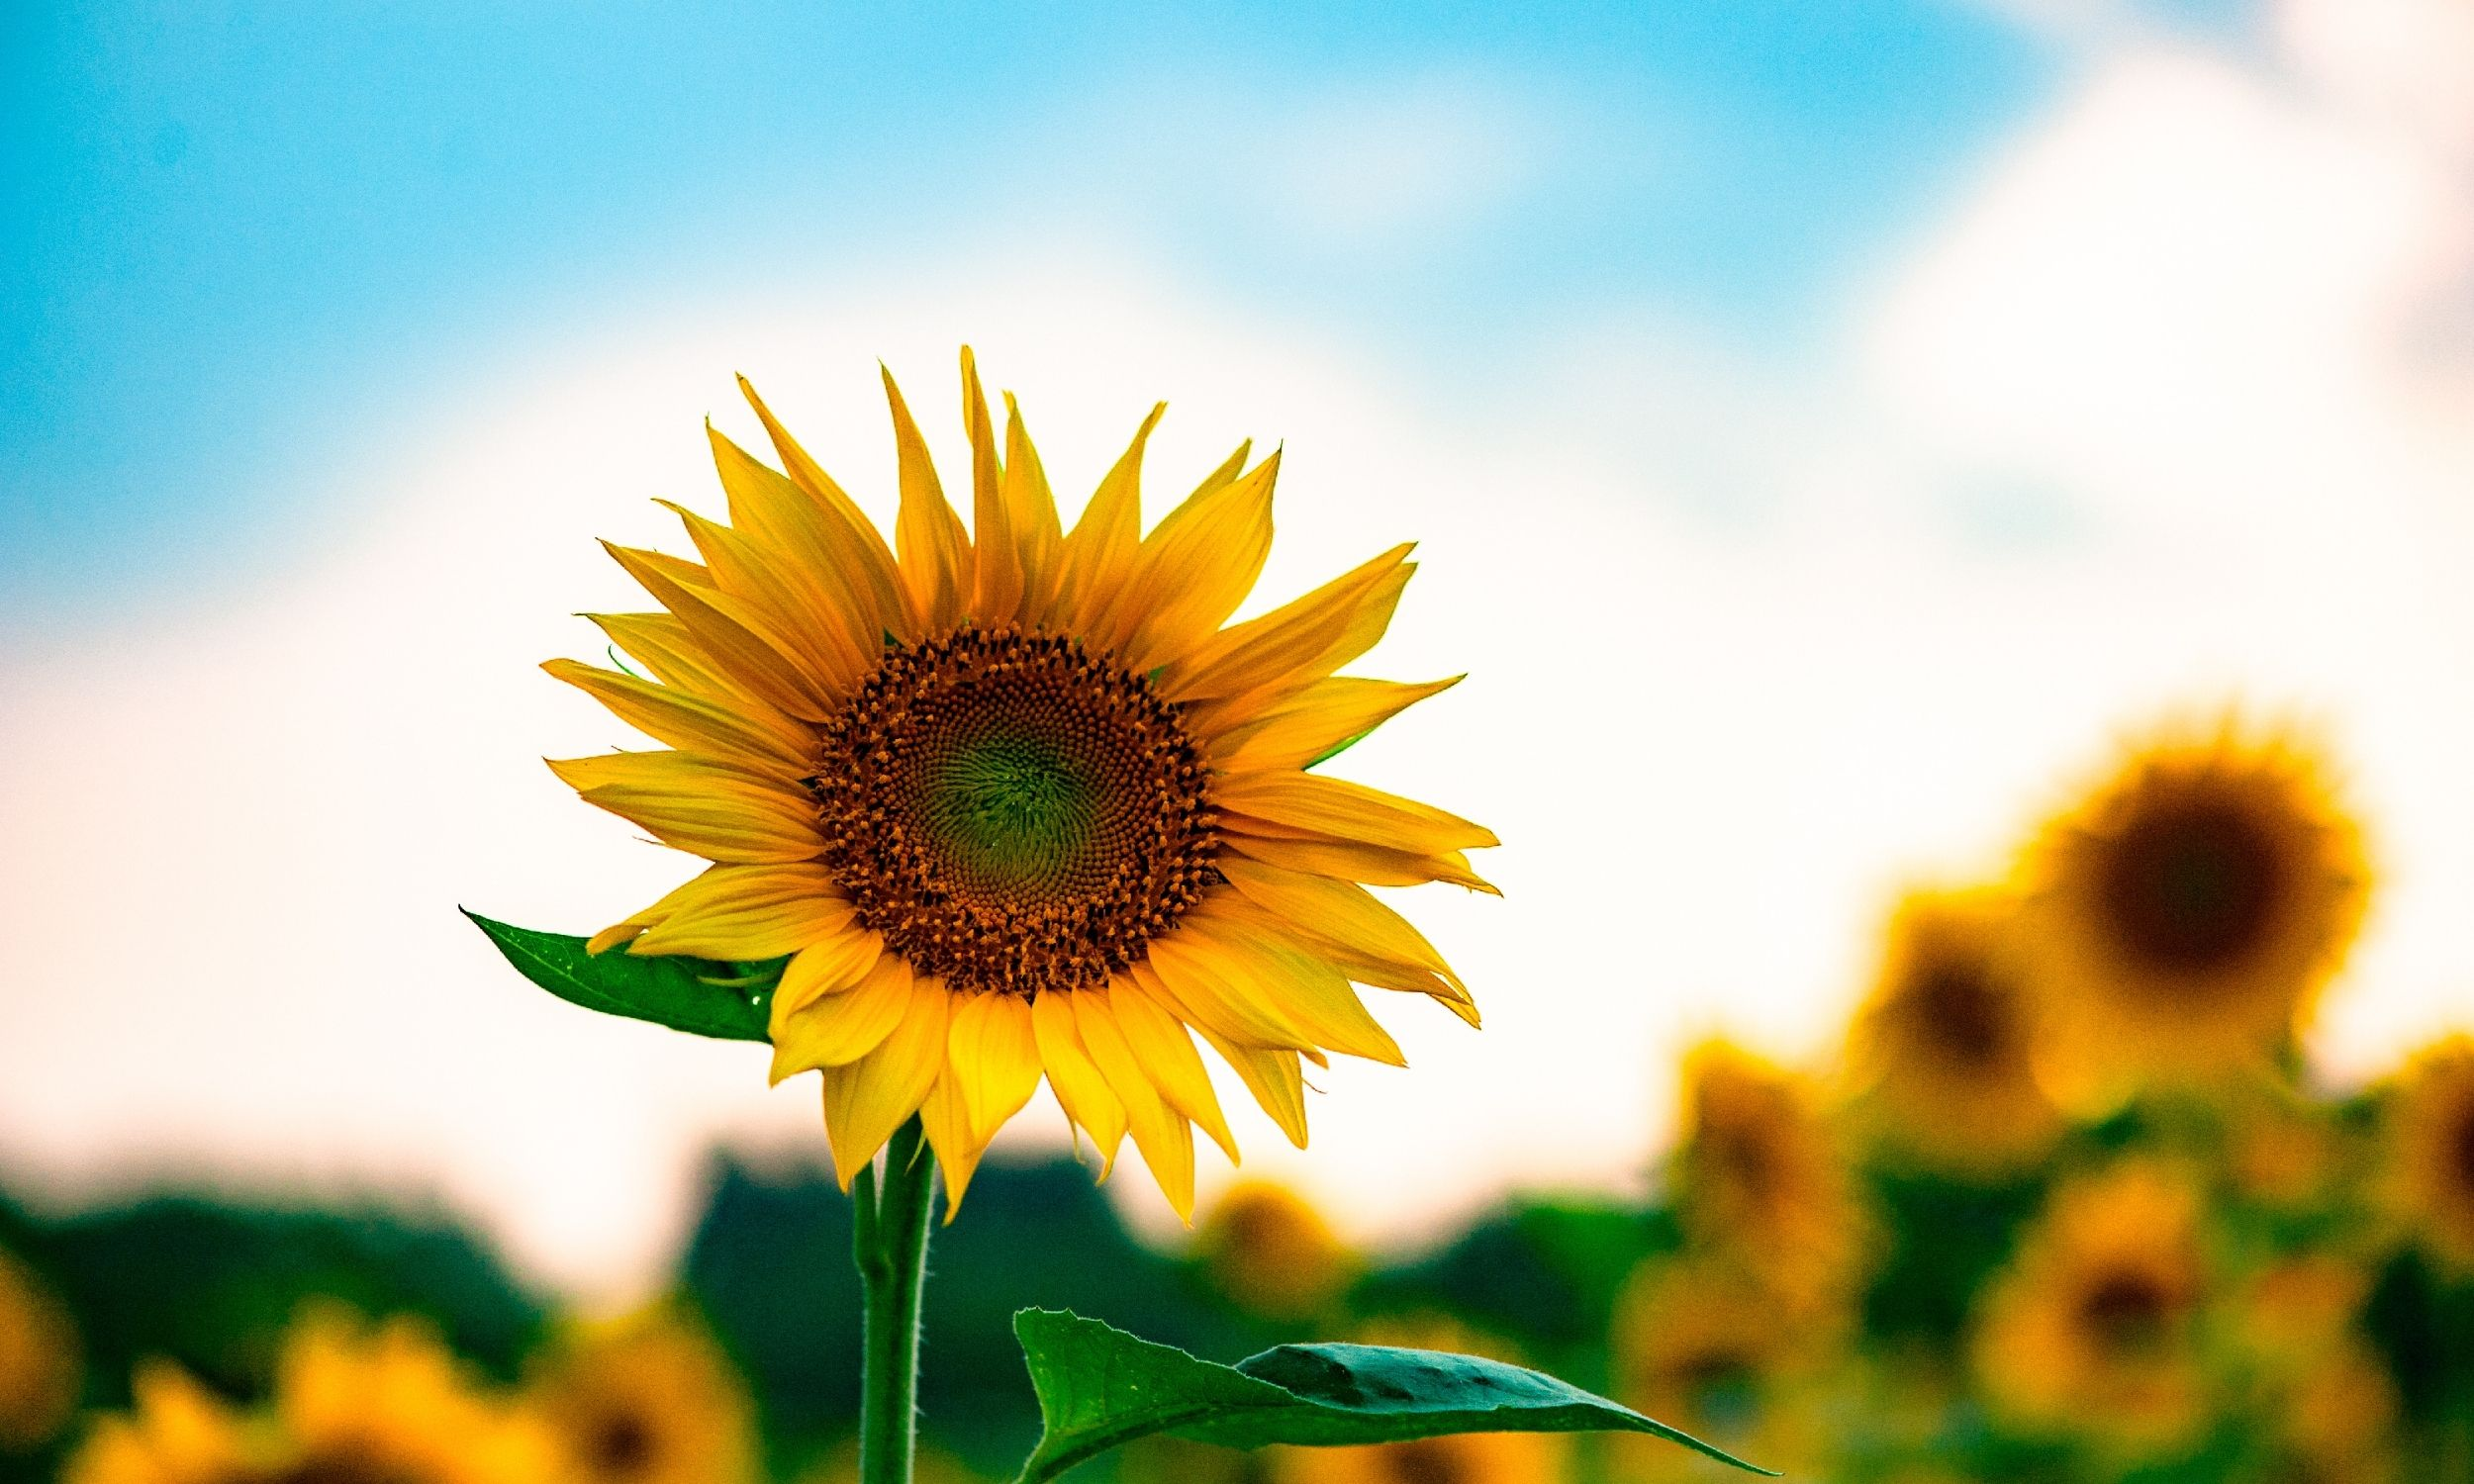 sunflower in a field with a blue sky in the background